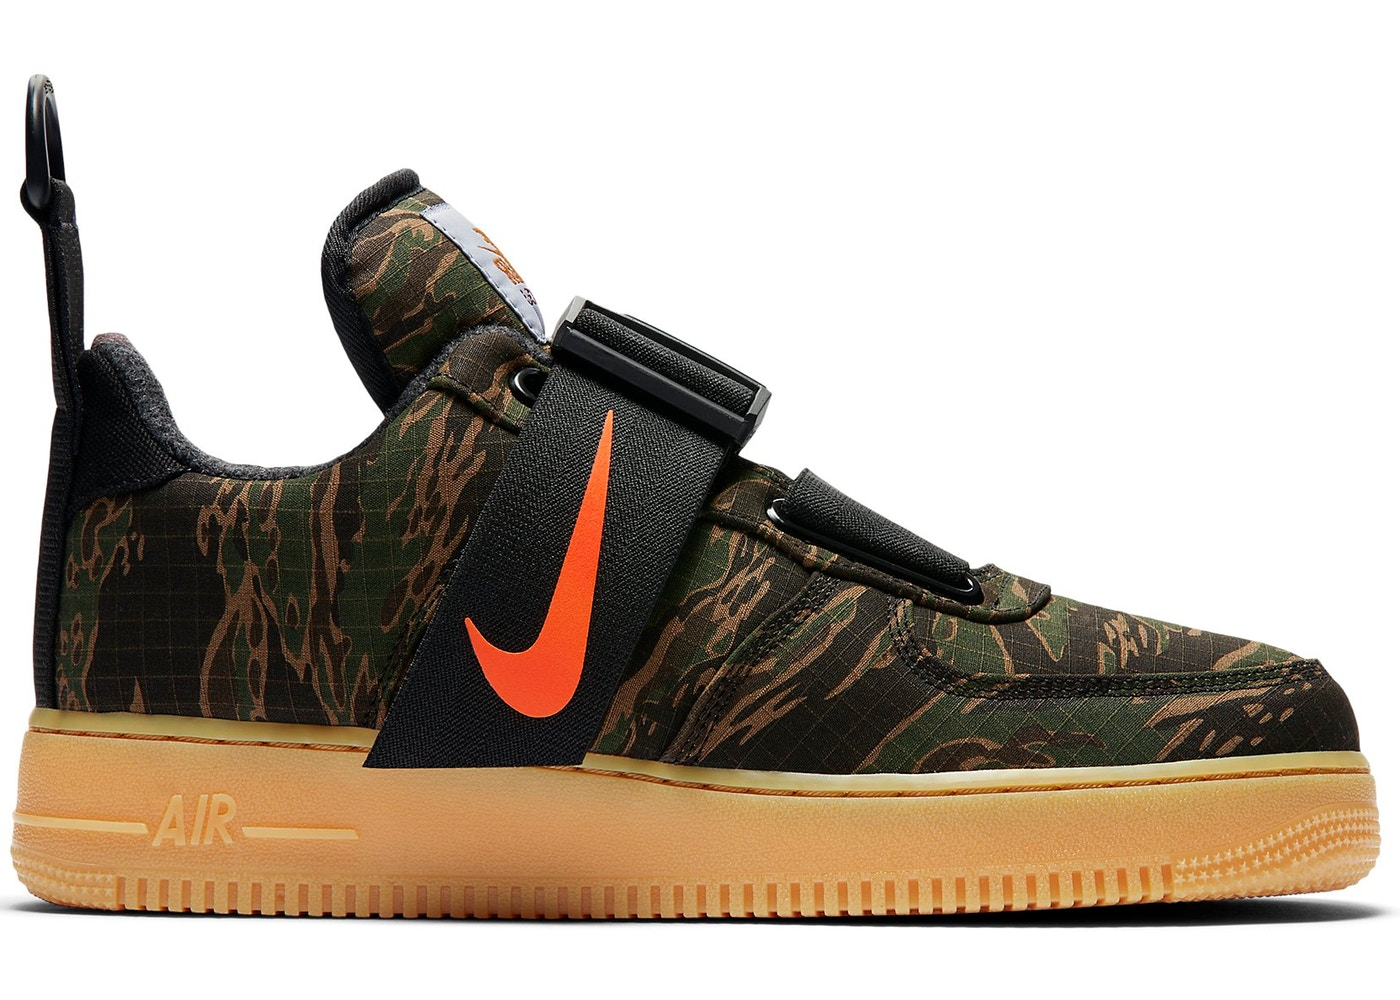 innovative design 71bfb 20553 Buy Nike Air Force Shoes  Deadstock Sneakers